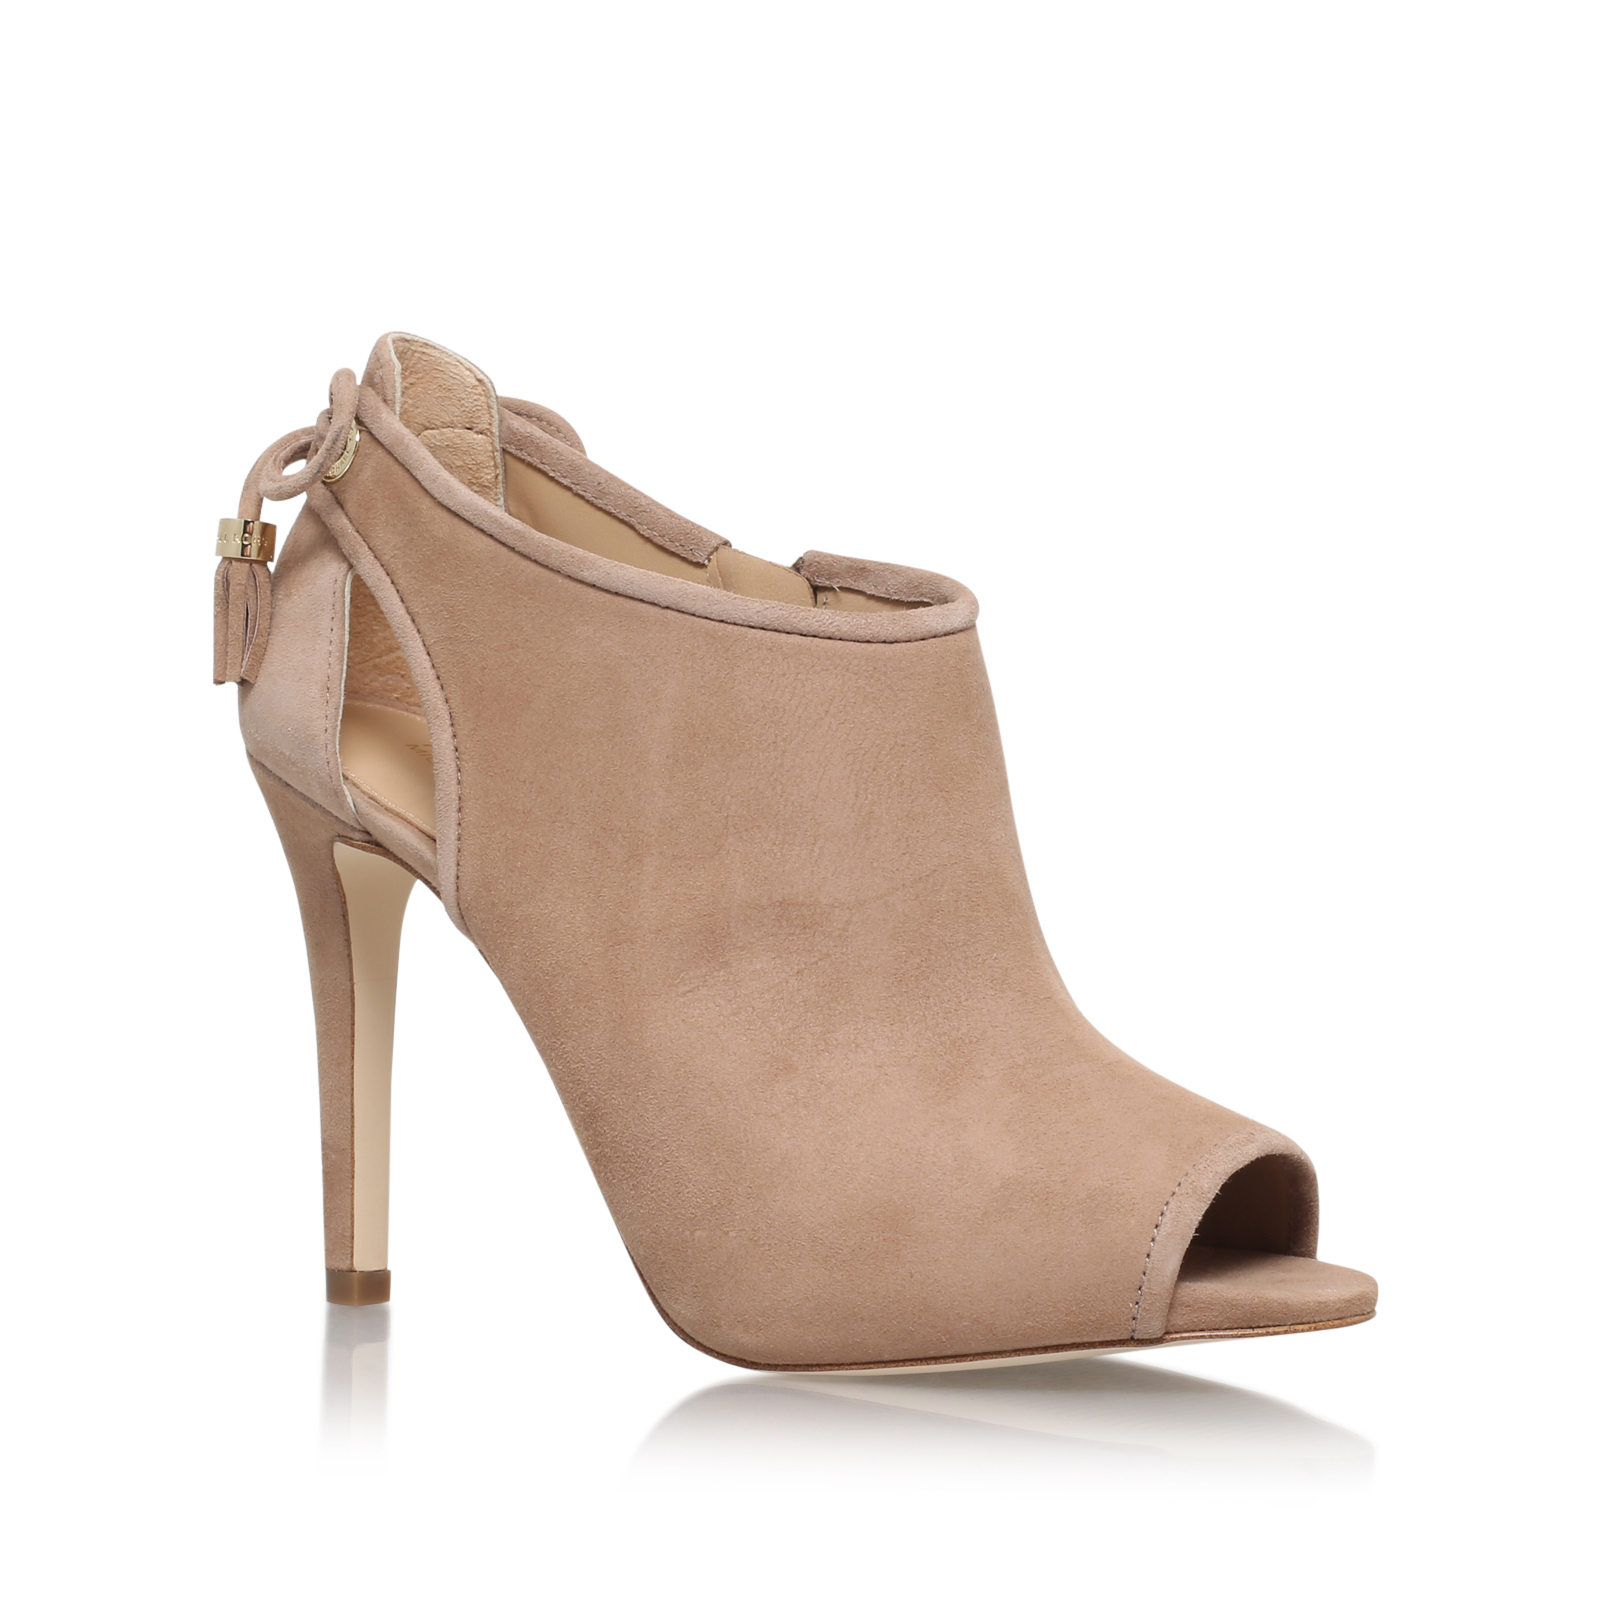 49d3a2aca78a JENNINGS BOOTIE Michael Michael Kors Jennings Taupe Suede High Heel Ankle  Boots by MICHAEL MICHAEL KORS